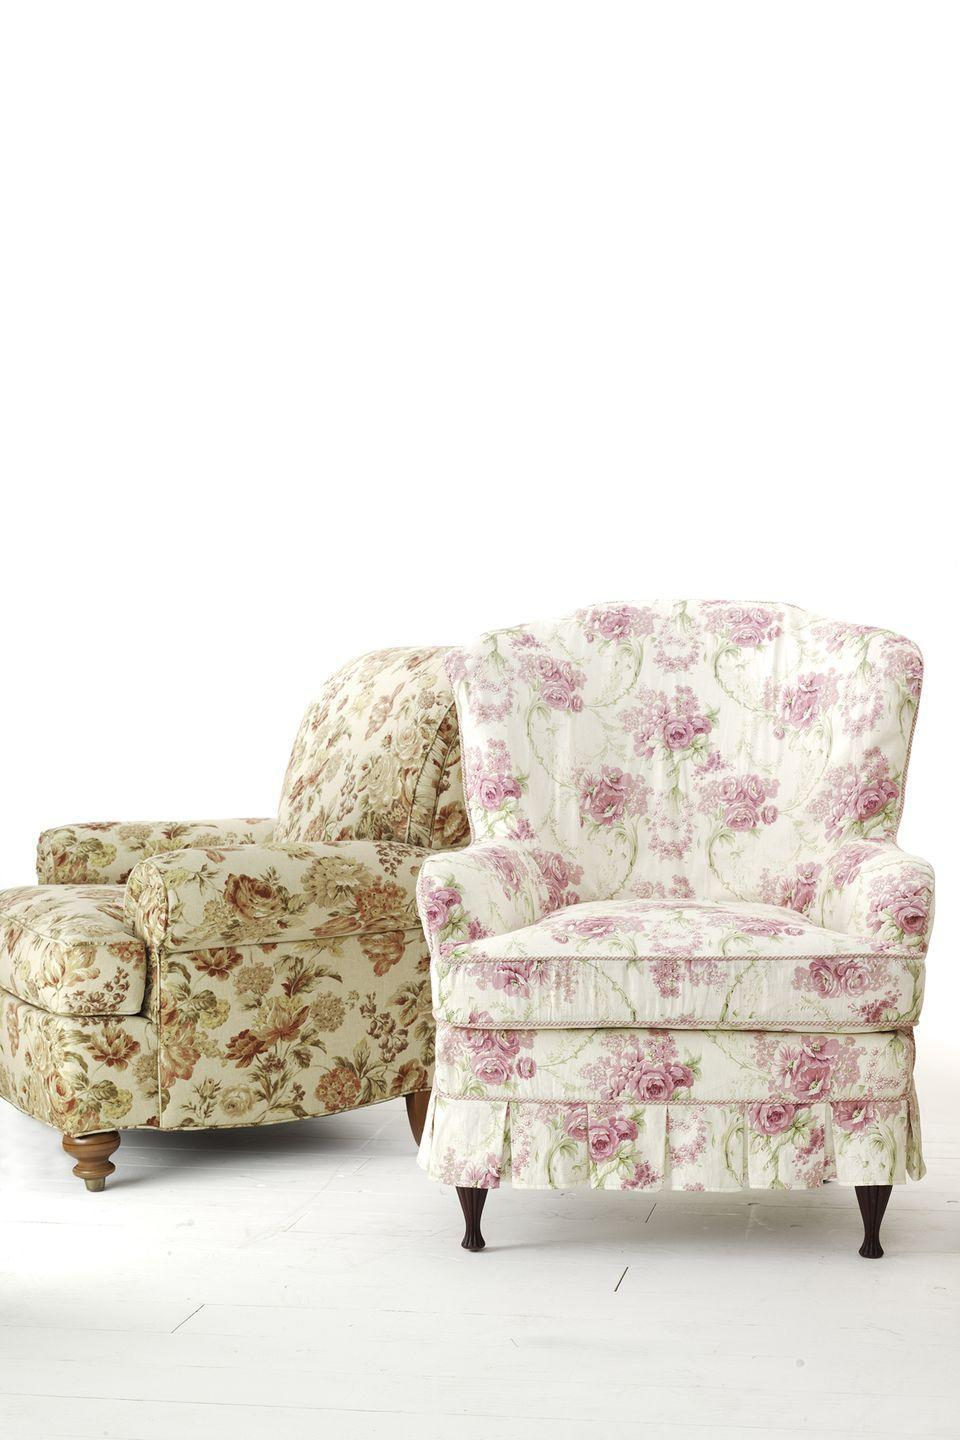 <p>At the very least, you should plan to remove and replace all the upholstery from previously owned furniture to avoid bed bugs, allergens, and mold. Or, play it safe by skipping fabric-covered pieces altogether.</p>